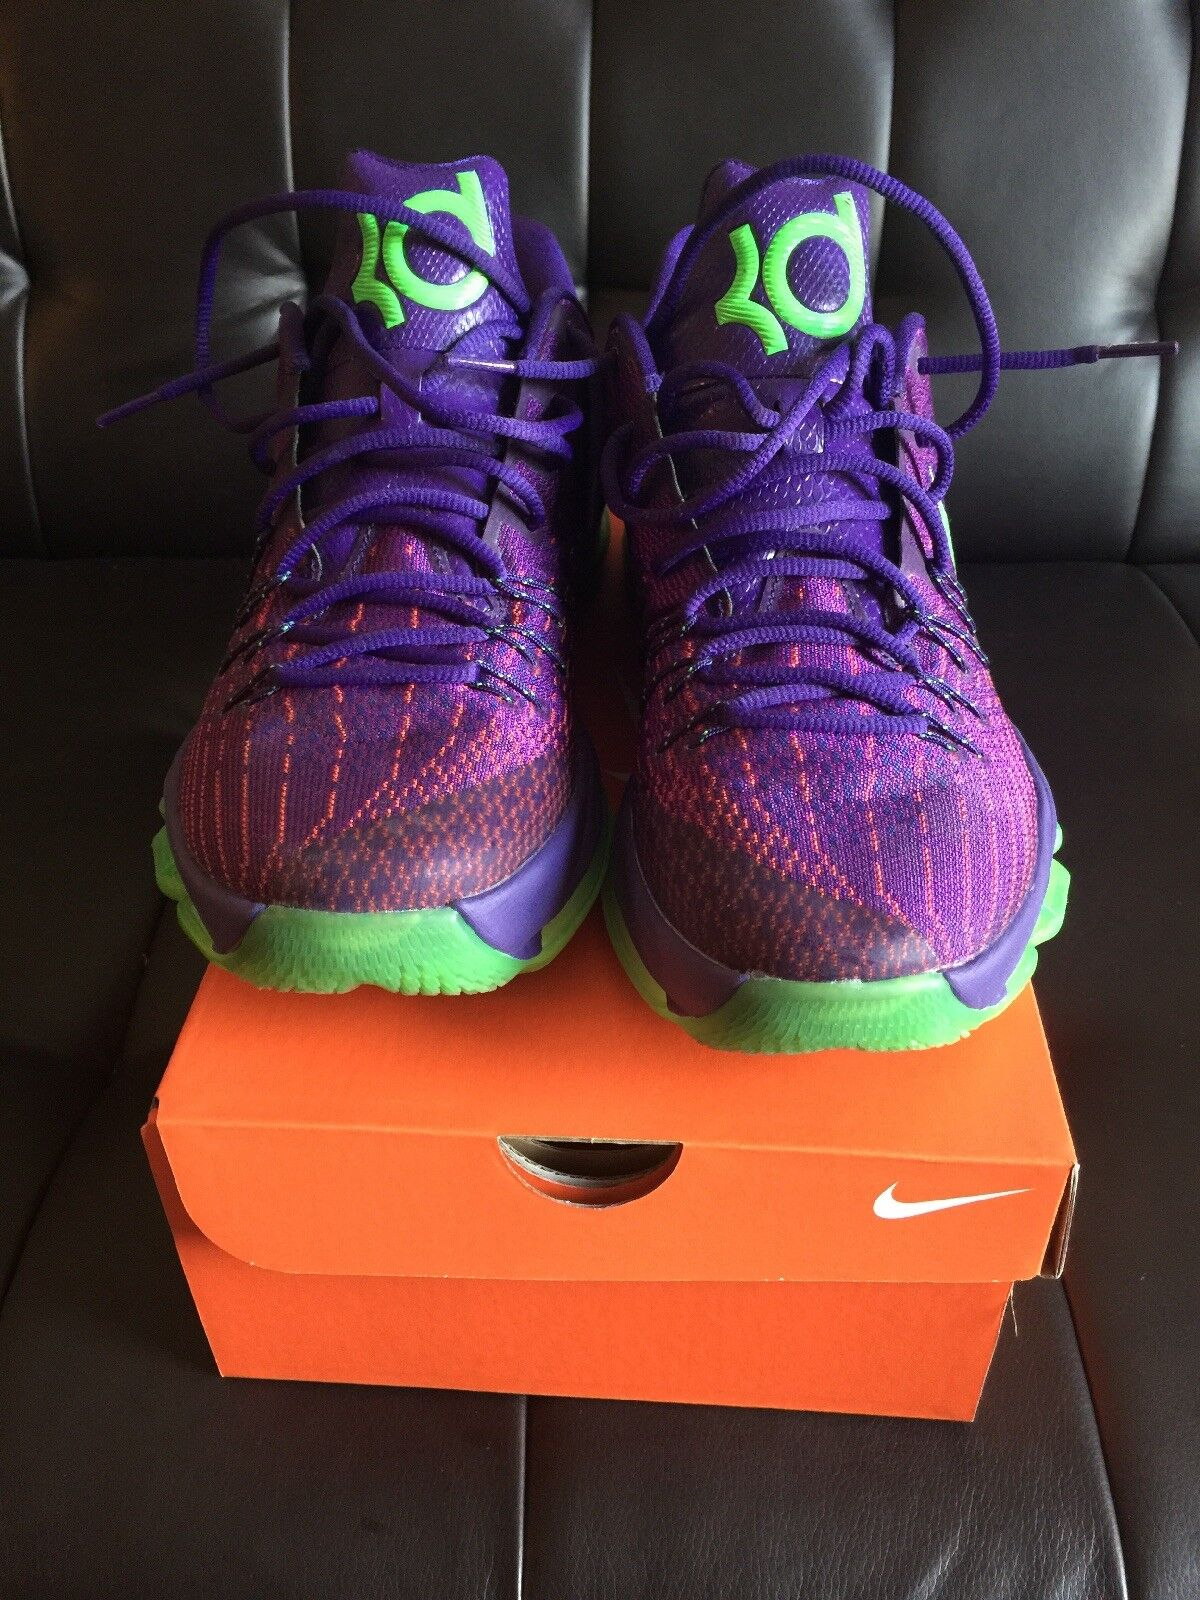 on sale d7f16 d9f11 Nike KD 8 8 8 EP VIII Suit Kevin Durant Men s Basketball Sneakers 749375-535